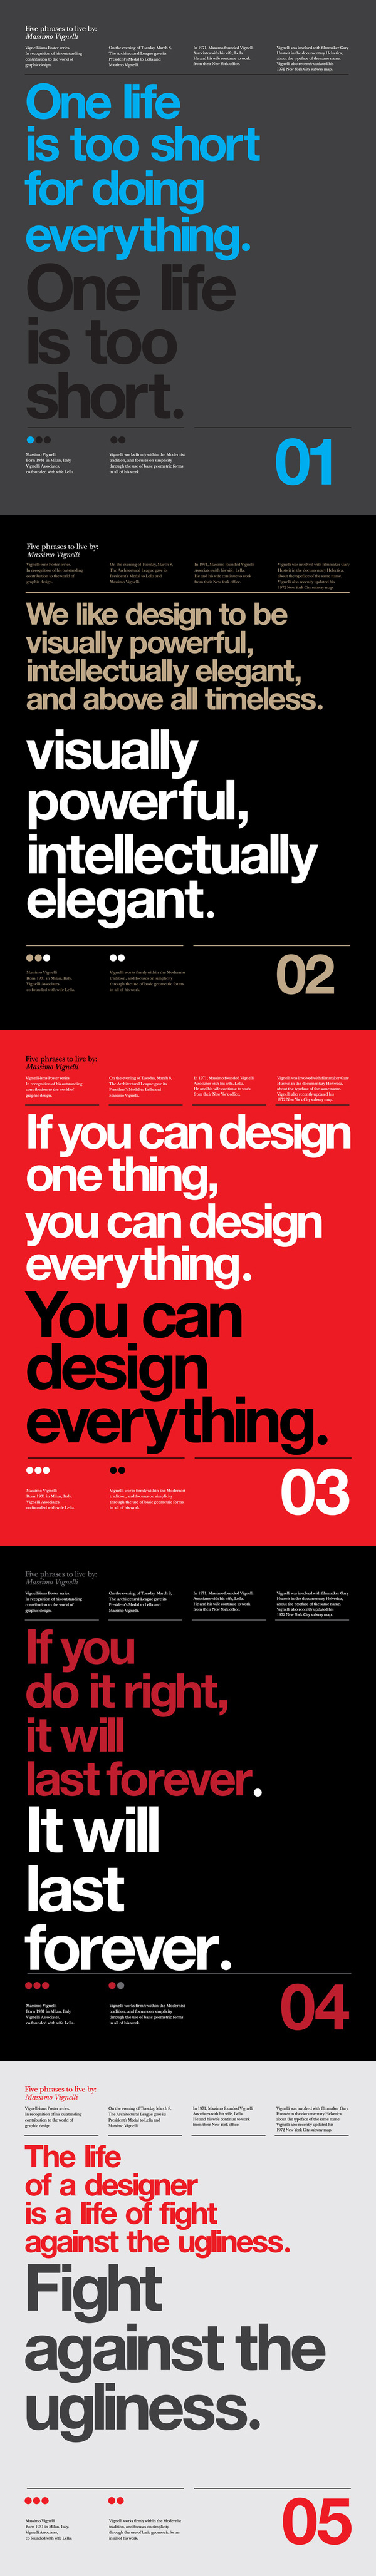 Vignelli Forever   Poster tribute by Anthony Neil Dart